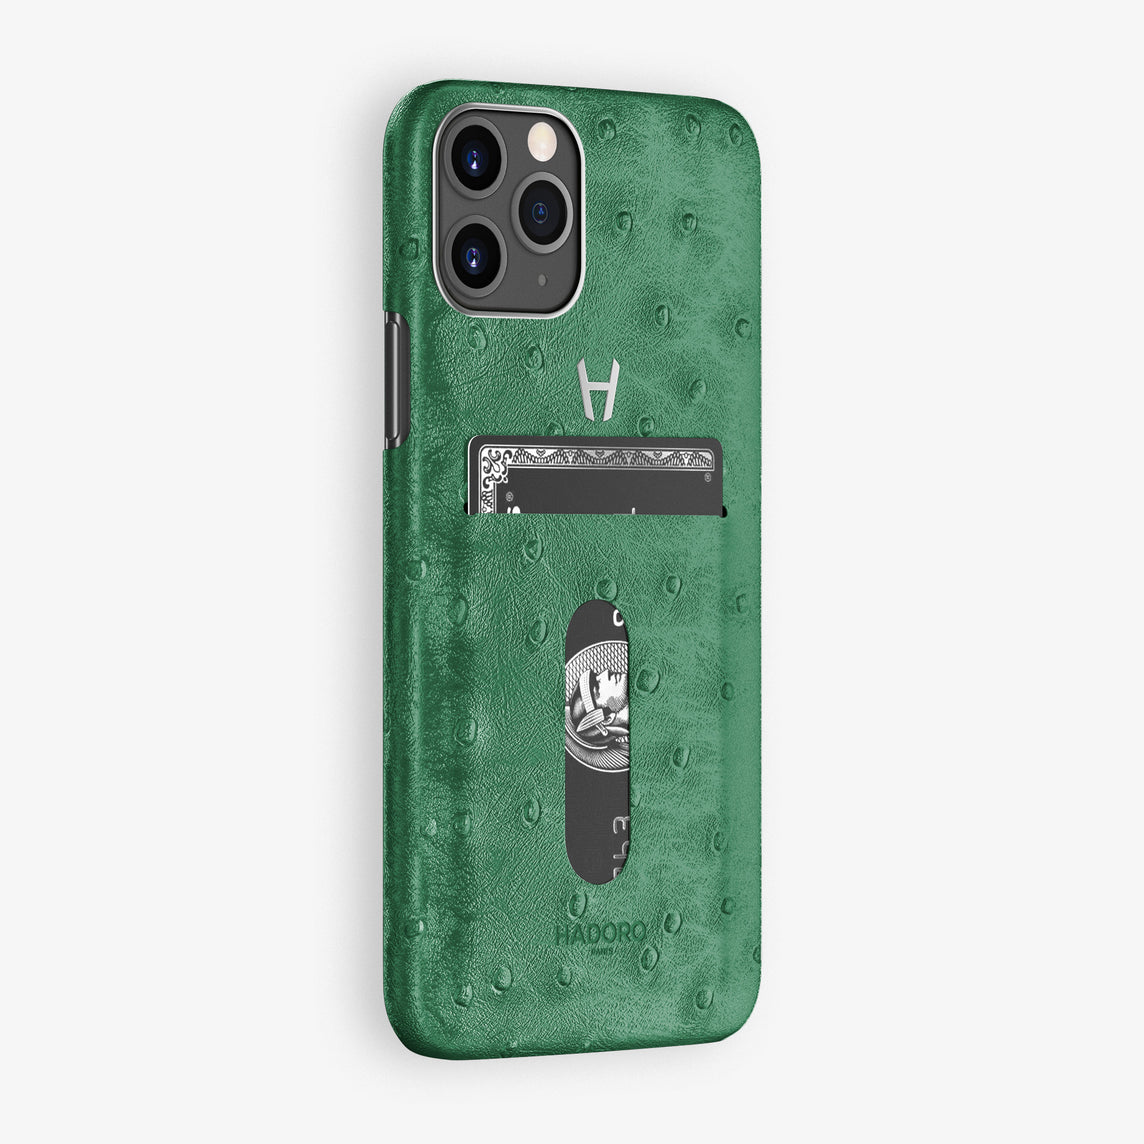 Ostrich Card Holder Case iPhone 11 Pro | Green - Stainless Steel